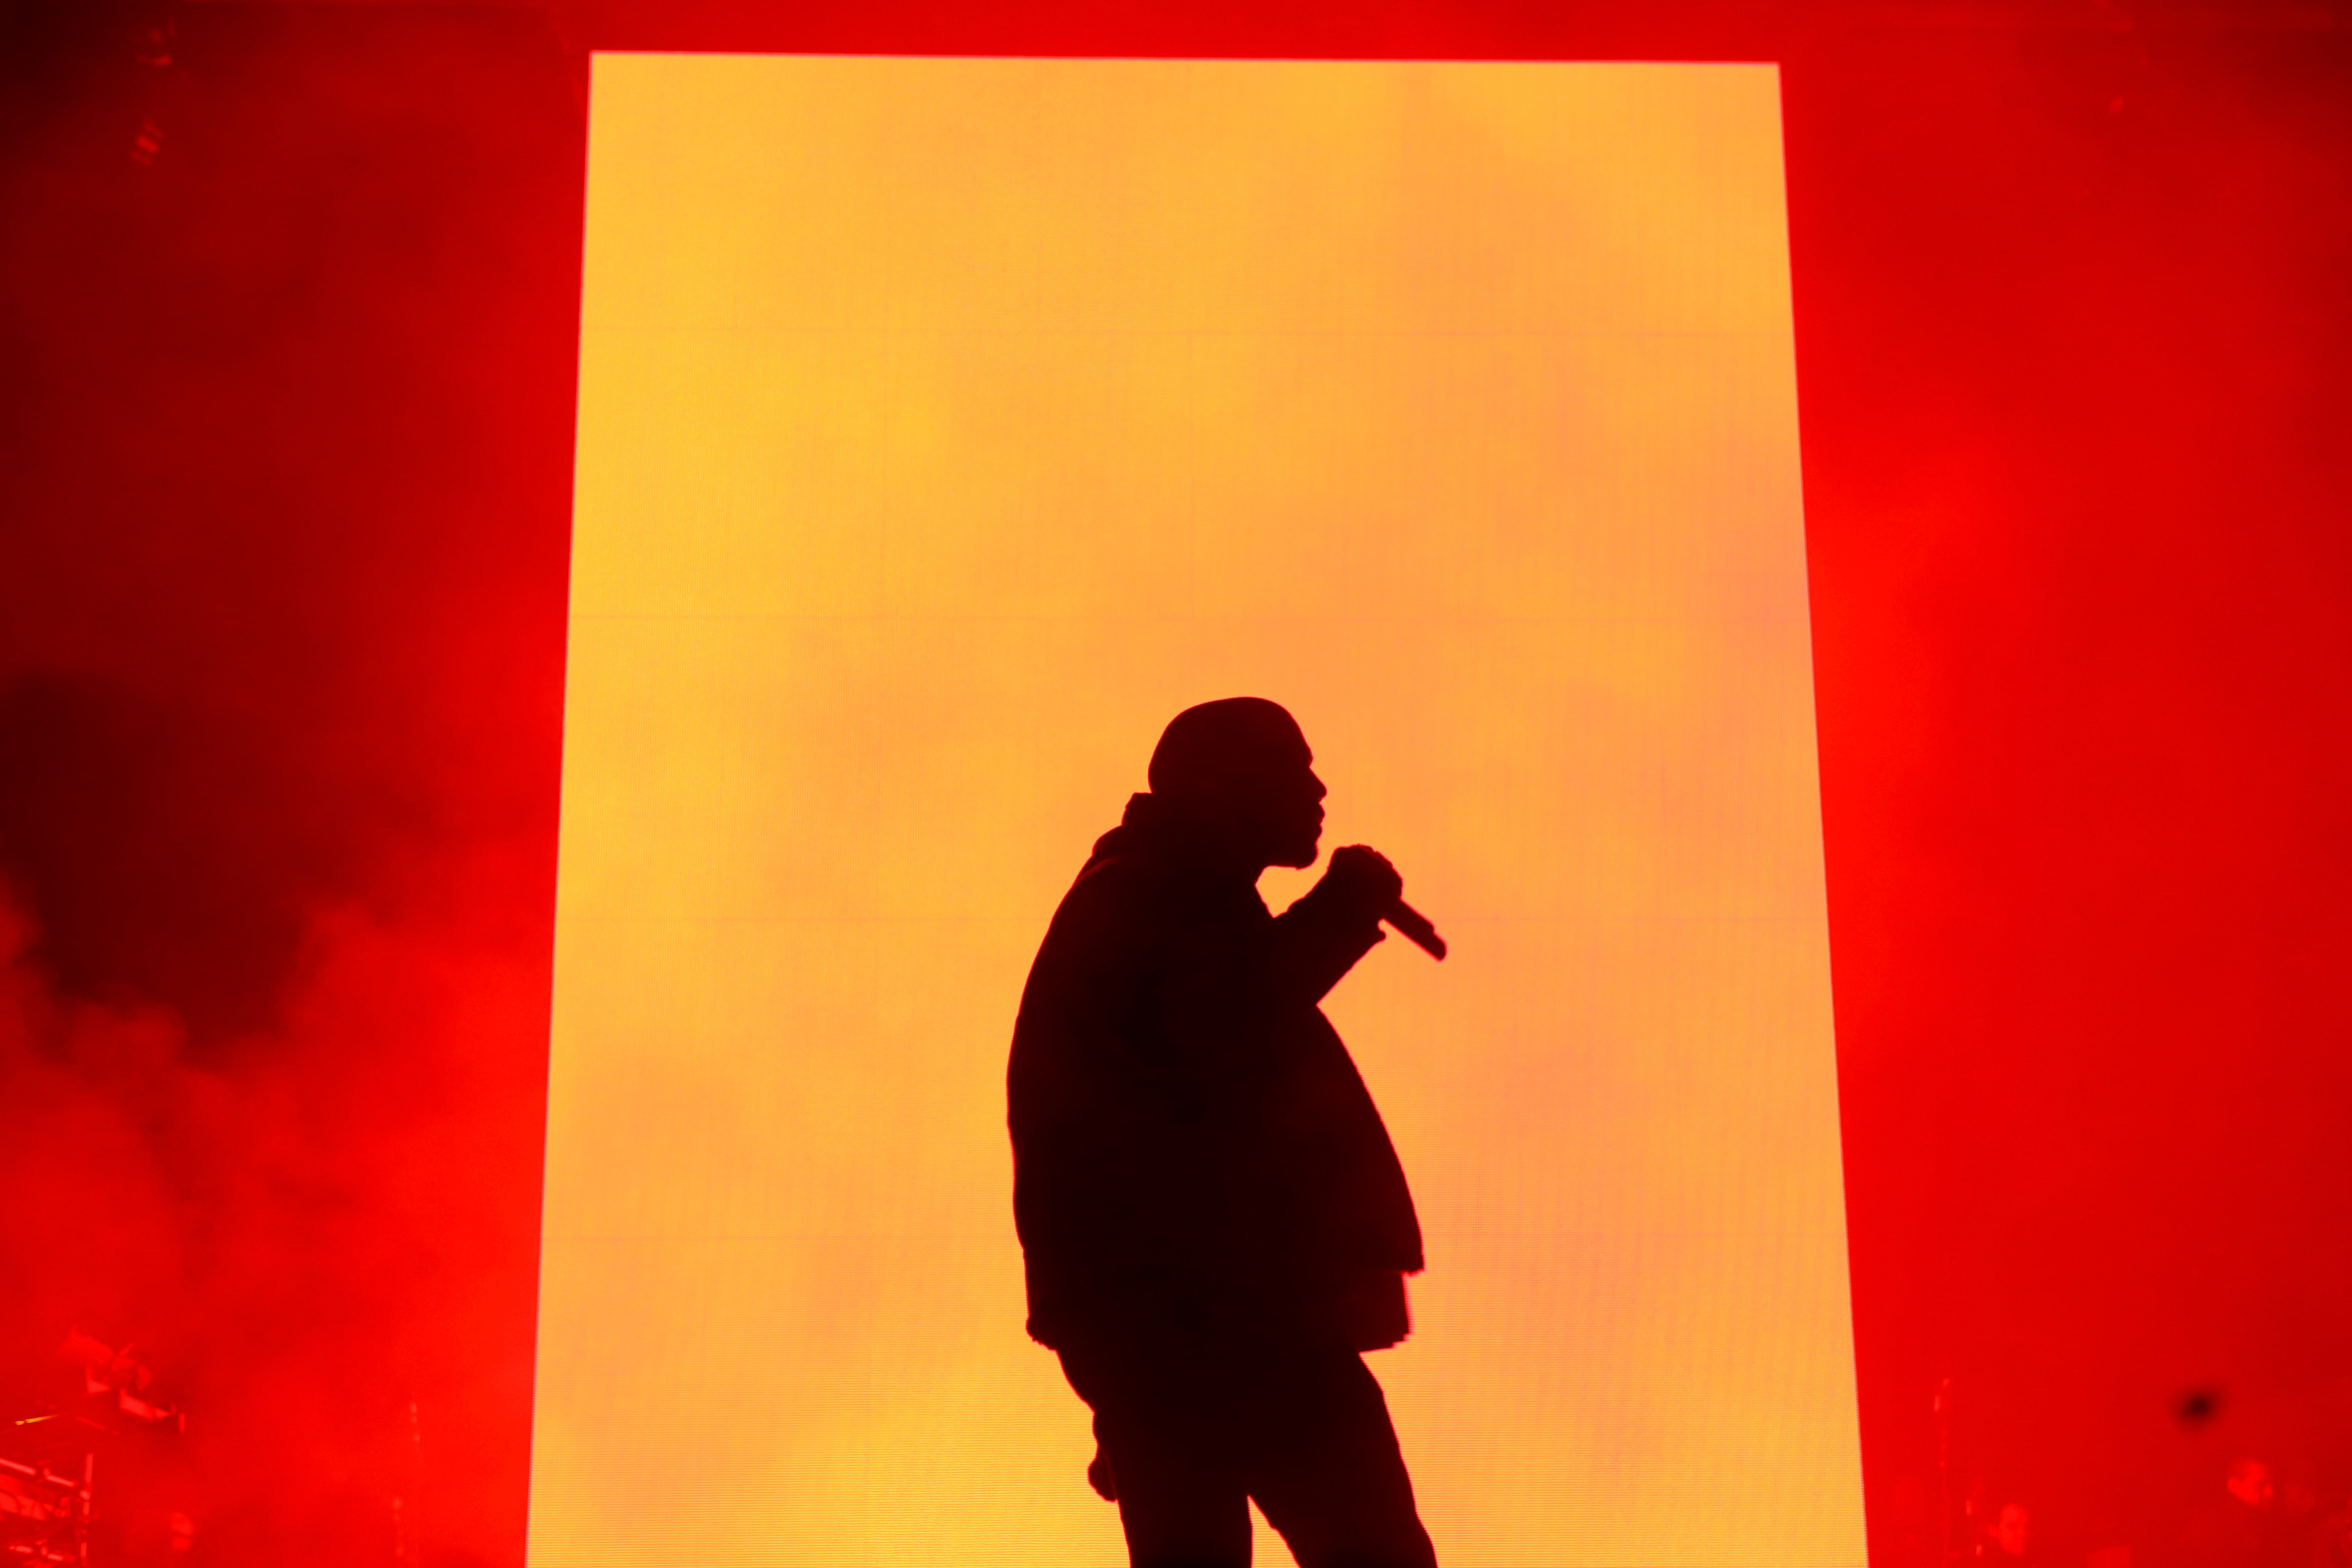 Kanye West performs during ROC NATION SPORTS 1st Annual Roc City Classic starring Kevin Durant x Kanye West on Feb. 12, 2015 in New York City.